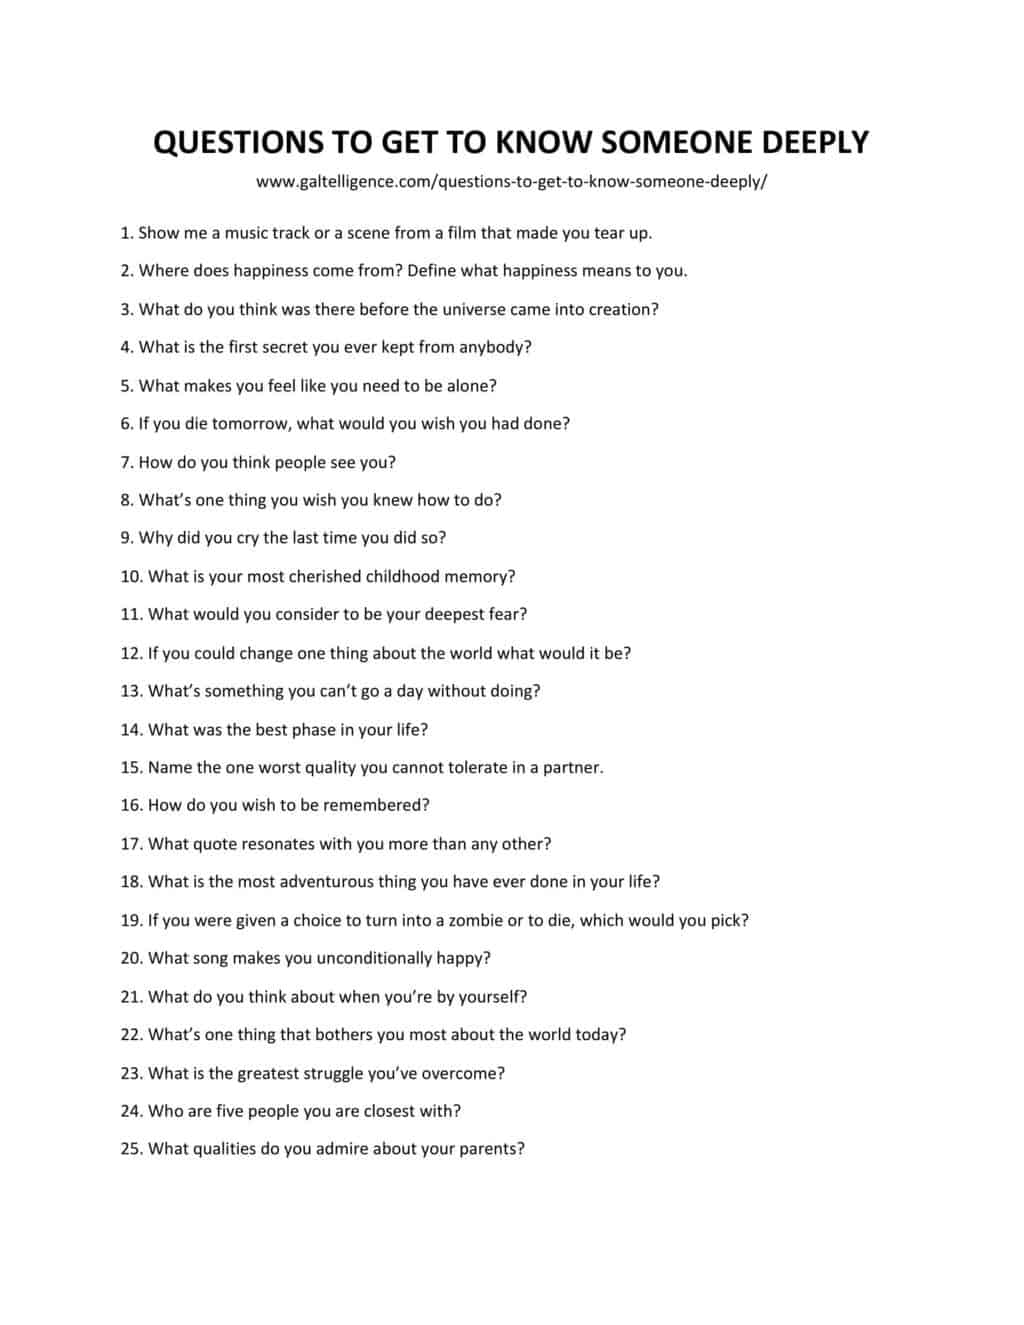 Downloadable and printable list of questions to get to know someone deeply as jpg or pdf